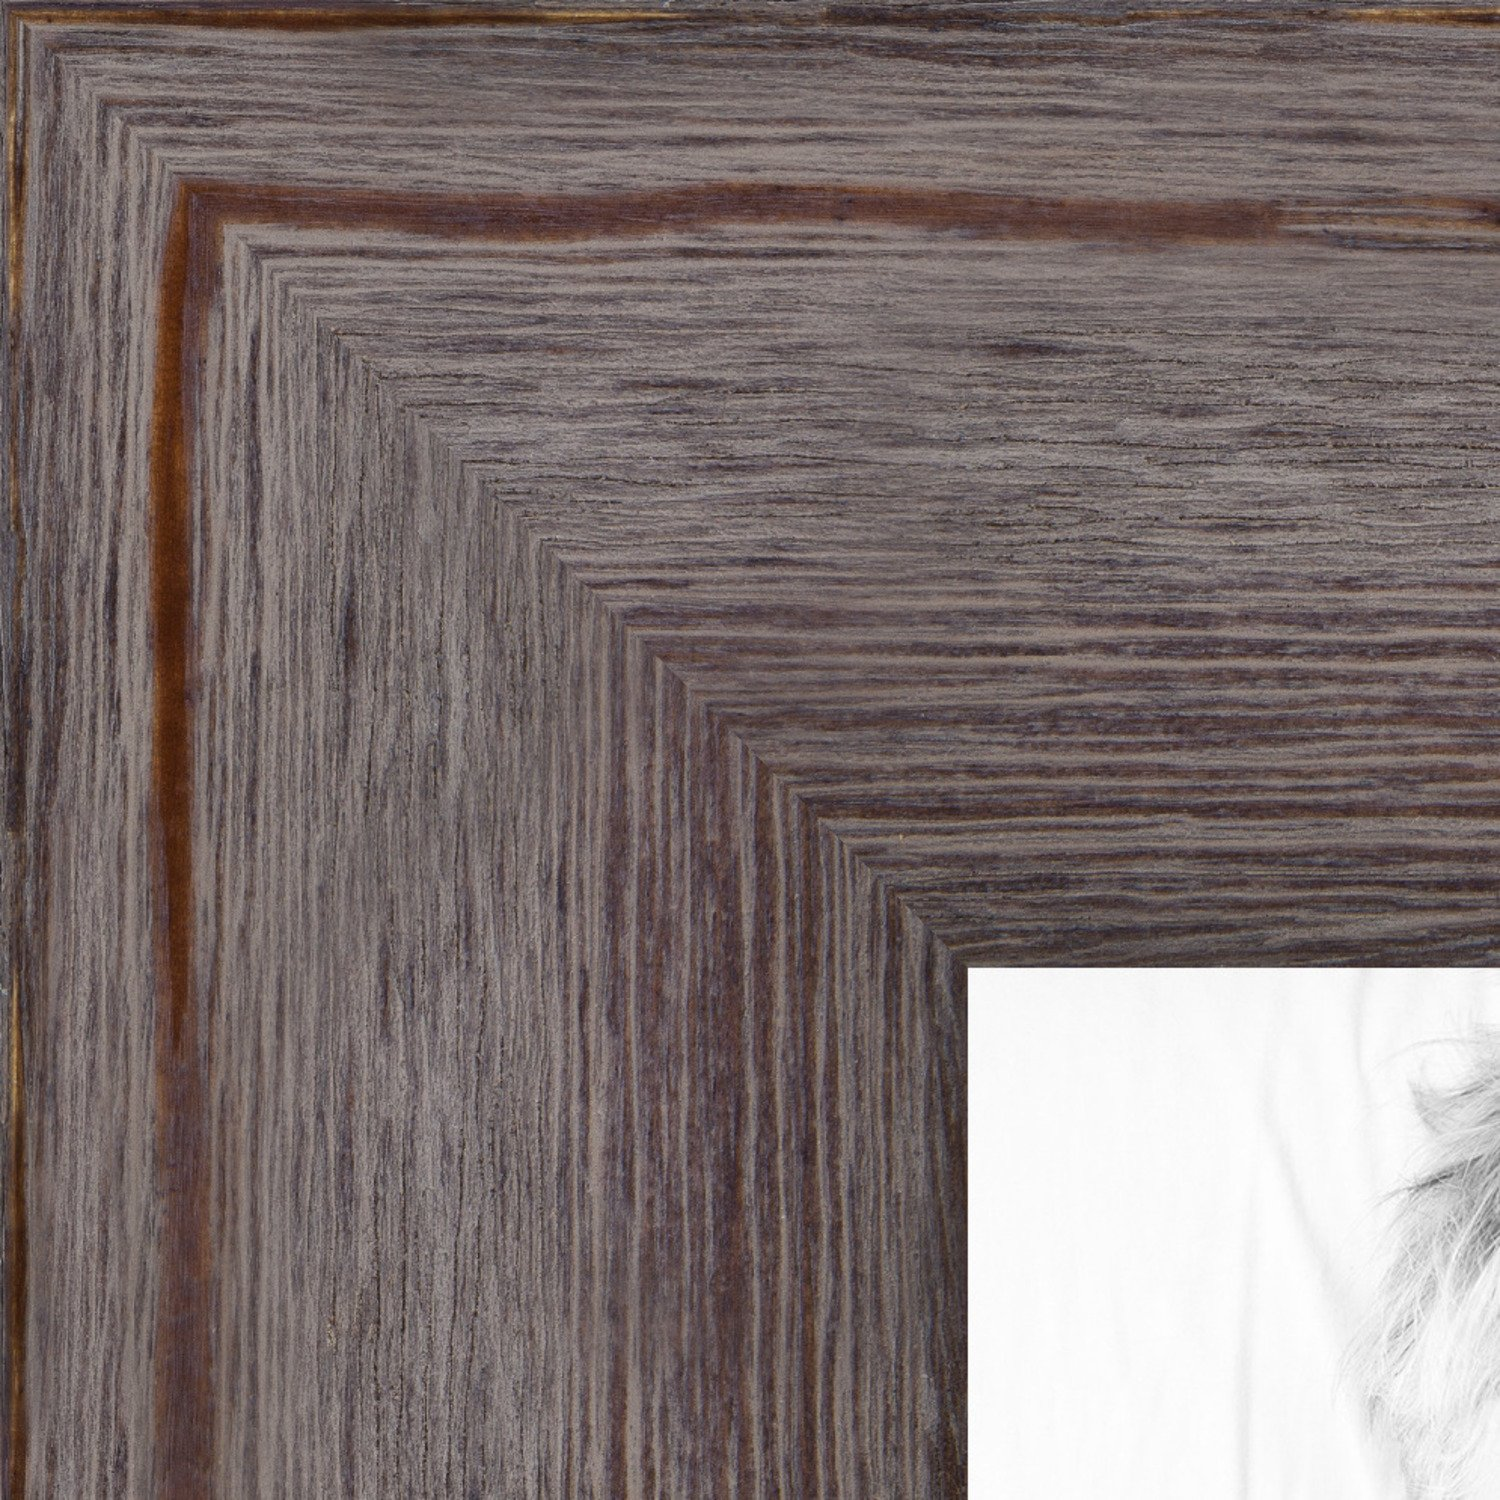 ArtToFrames 18x24 inch Grey - Distressed Wood Wood Picture Frame, WOM82223-101-18x24